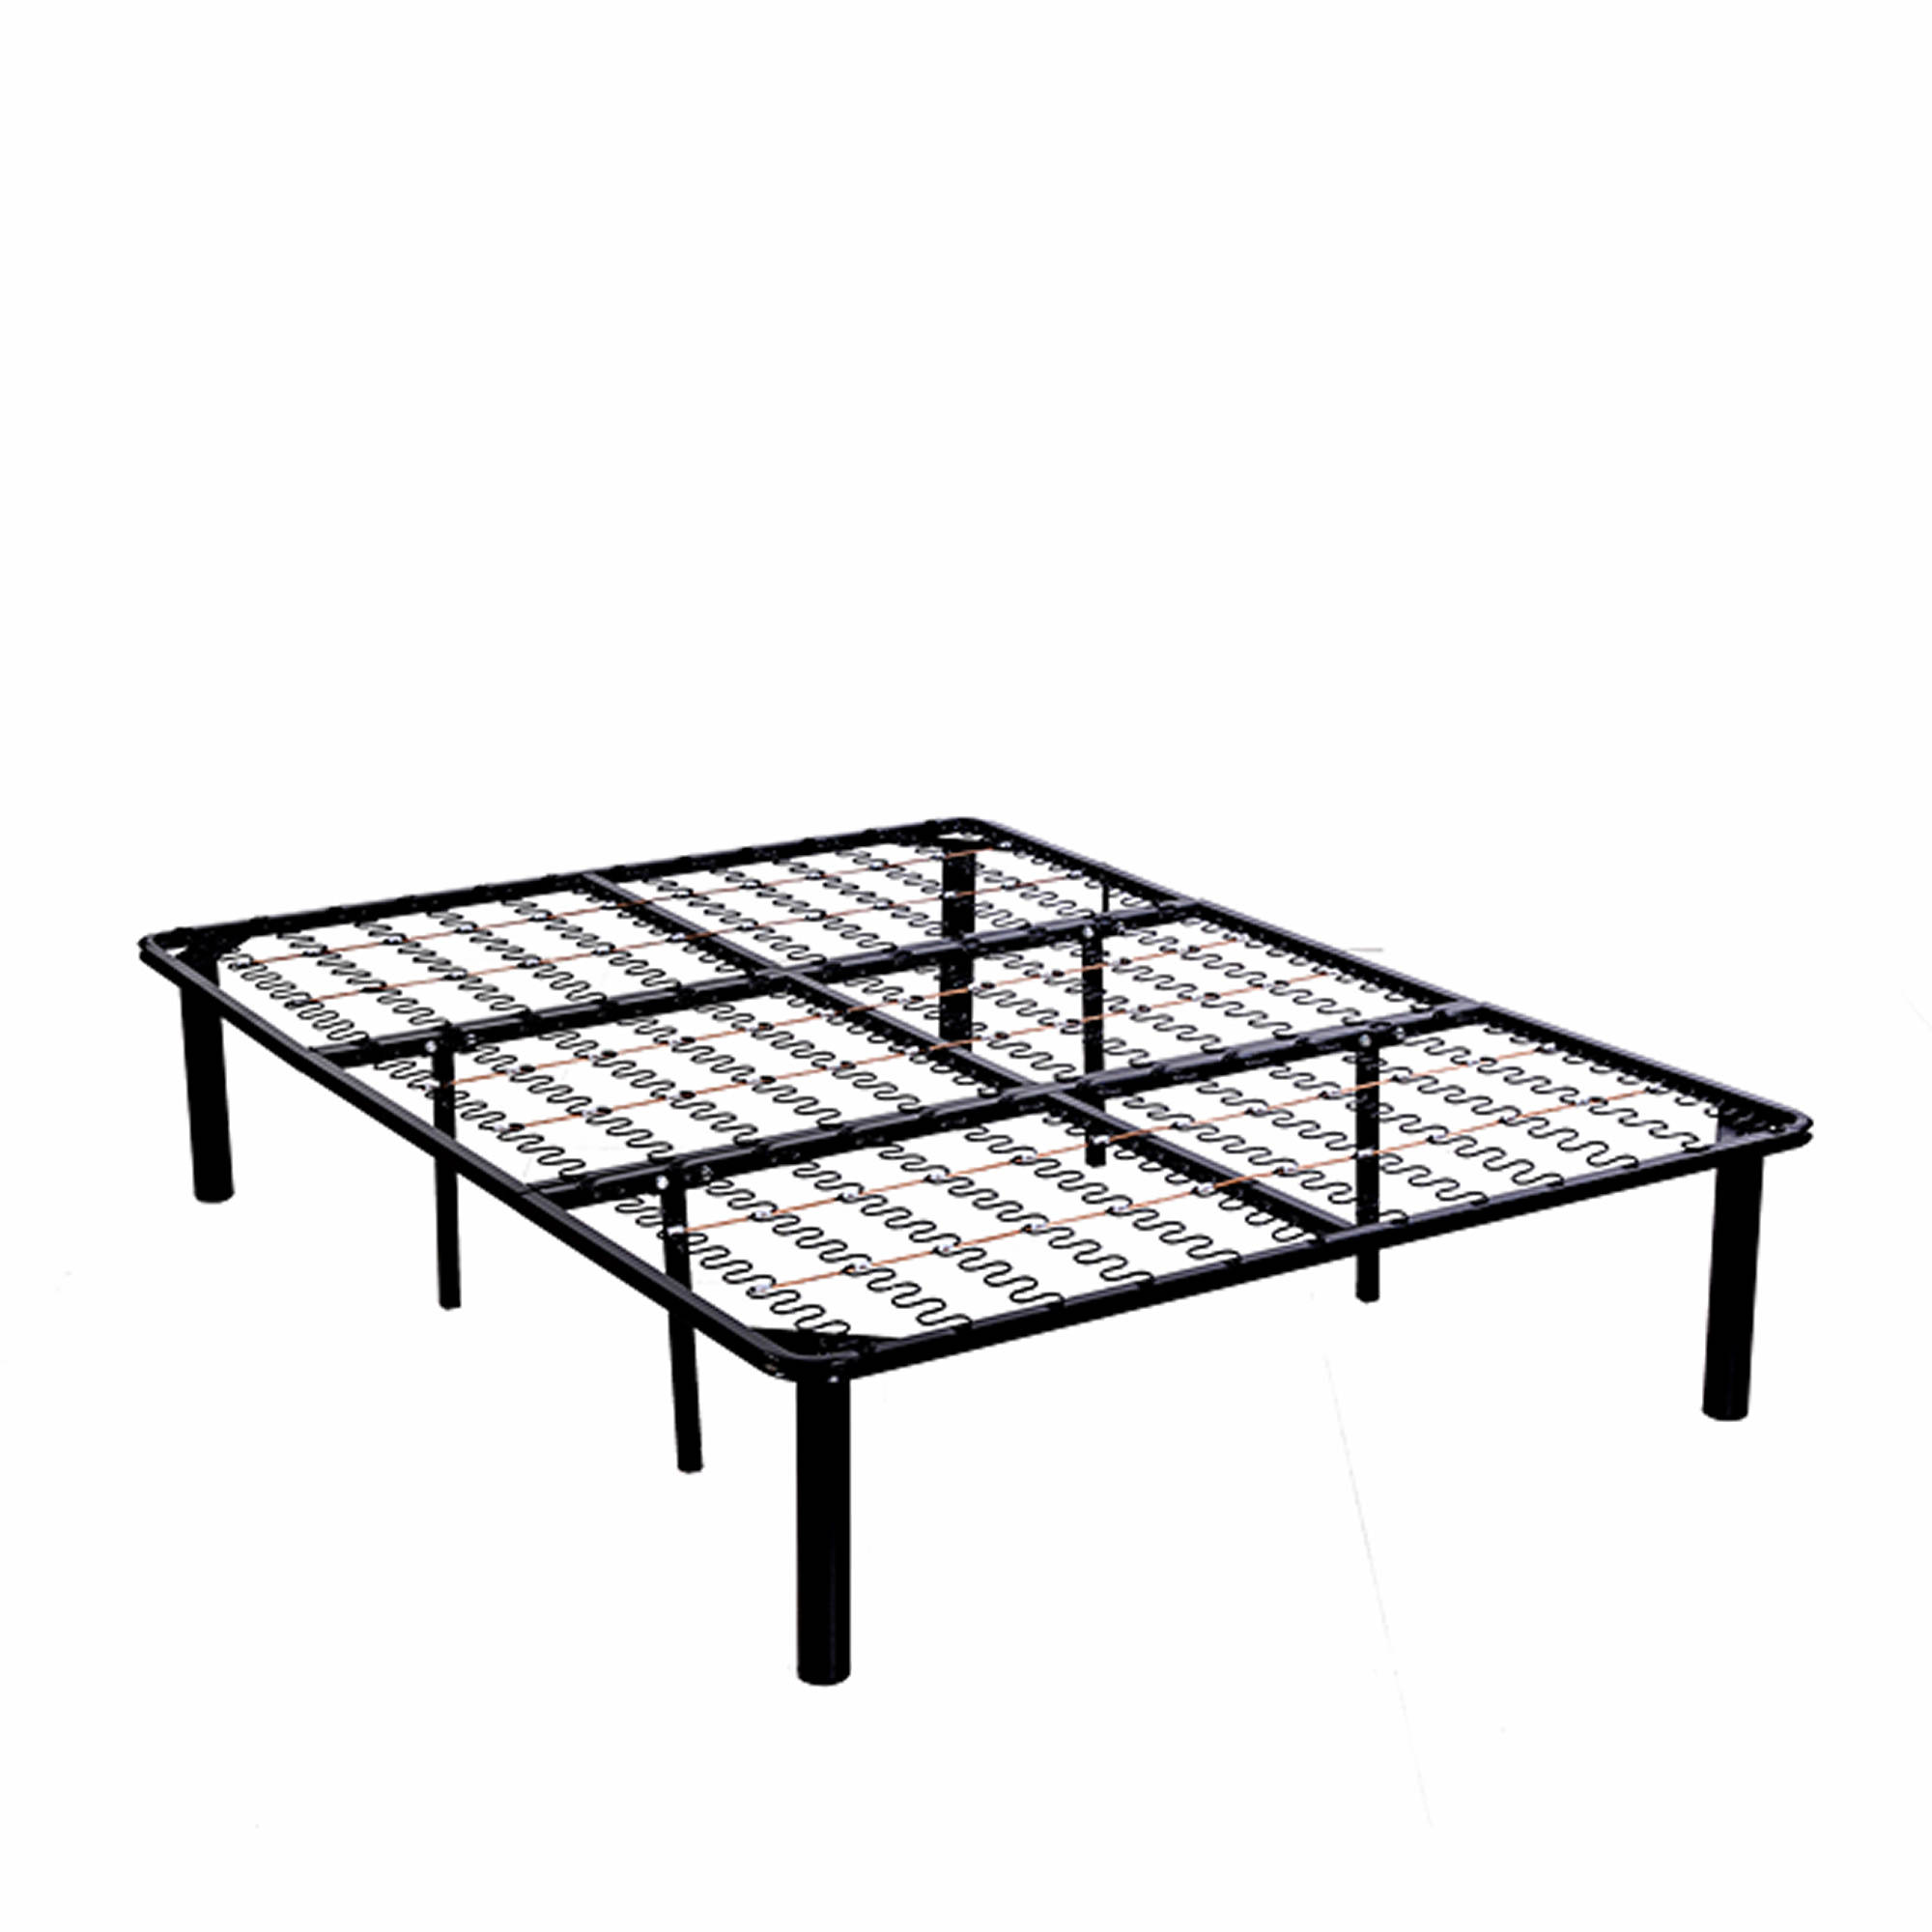 Handy Living Queen-Size Bed Frame - BJs WholeSale Club